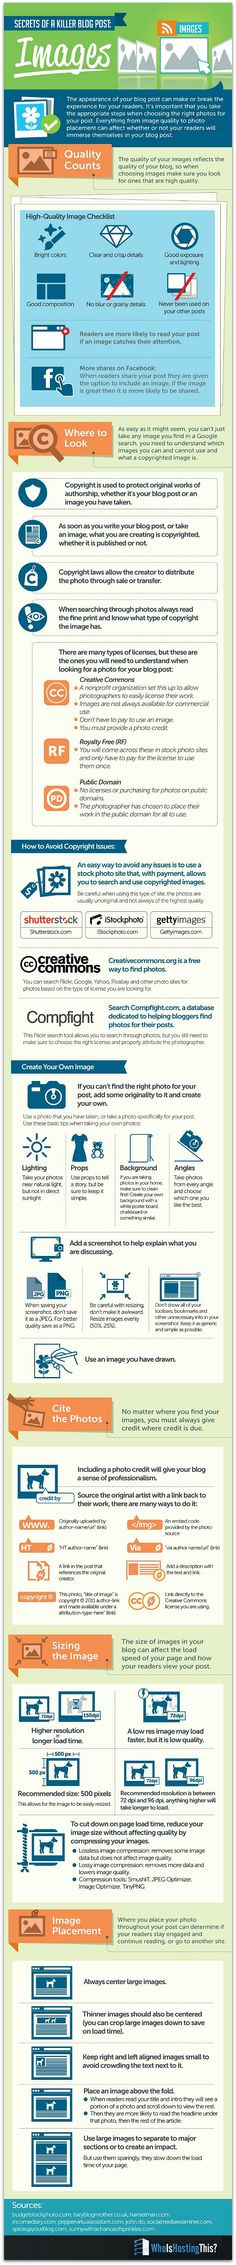 Sources of Killer Blog Post Images #blogging #infographic